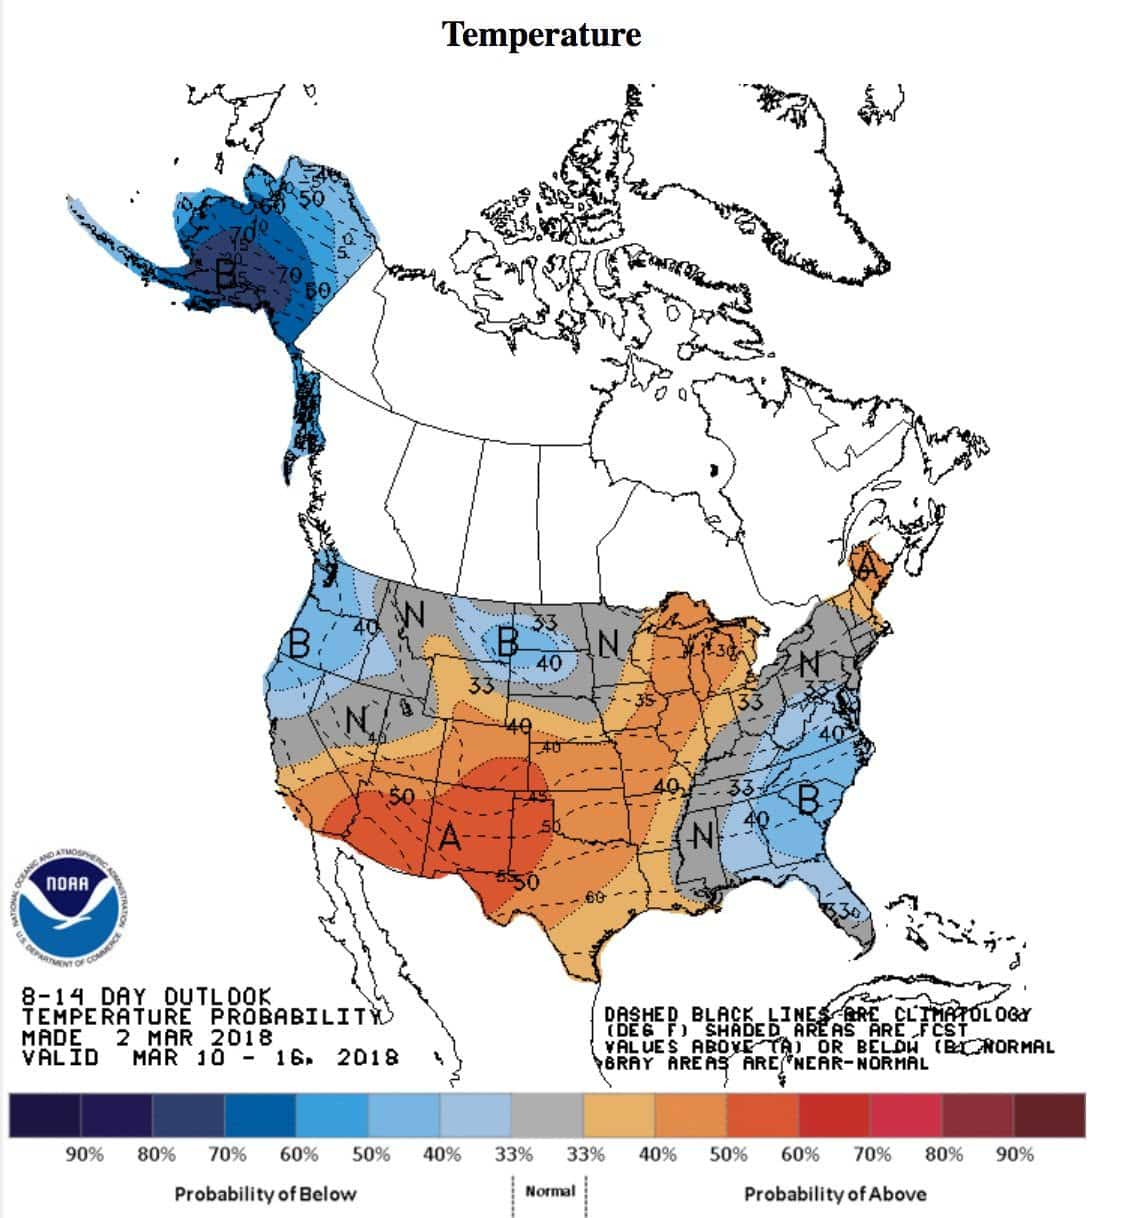 National Weather Service Temperature Forecast for March 10-16